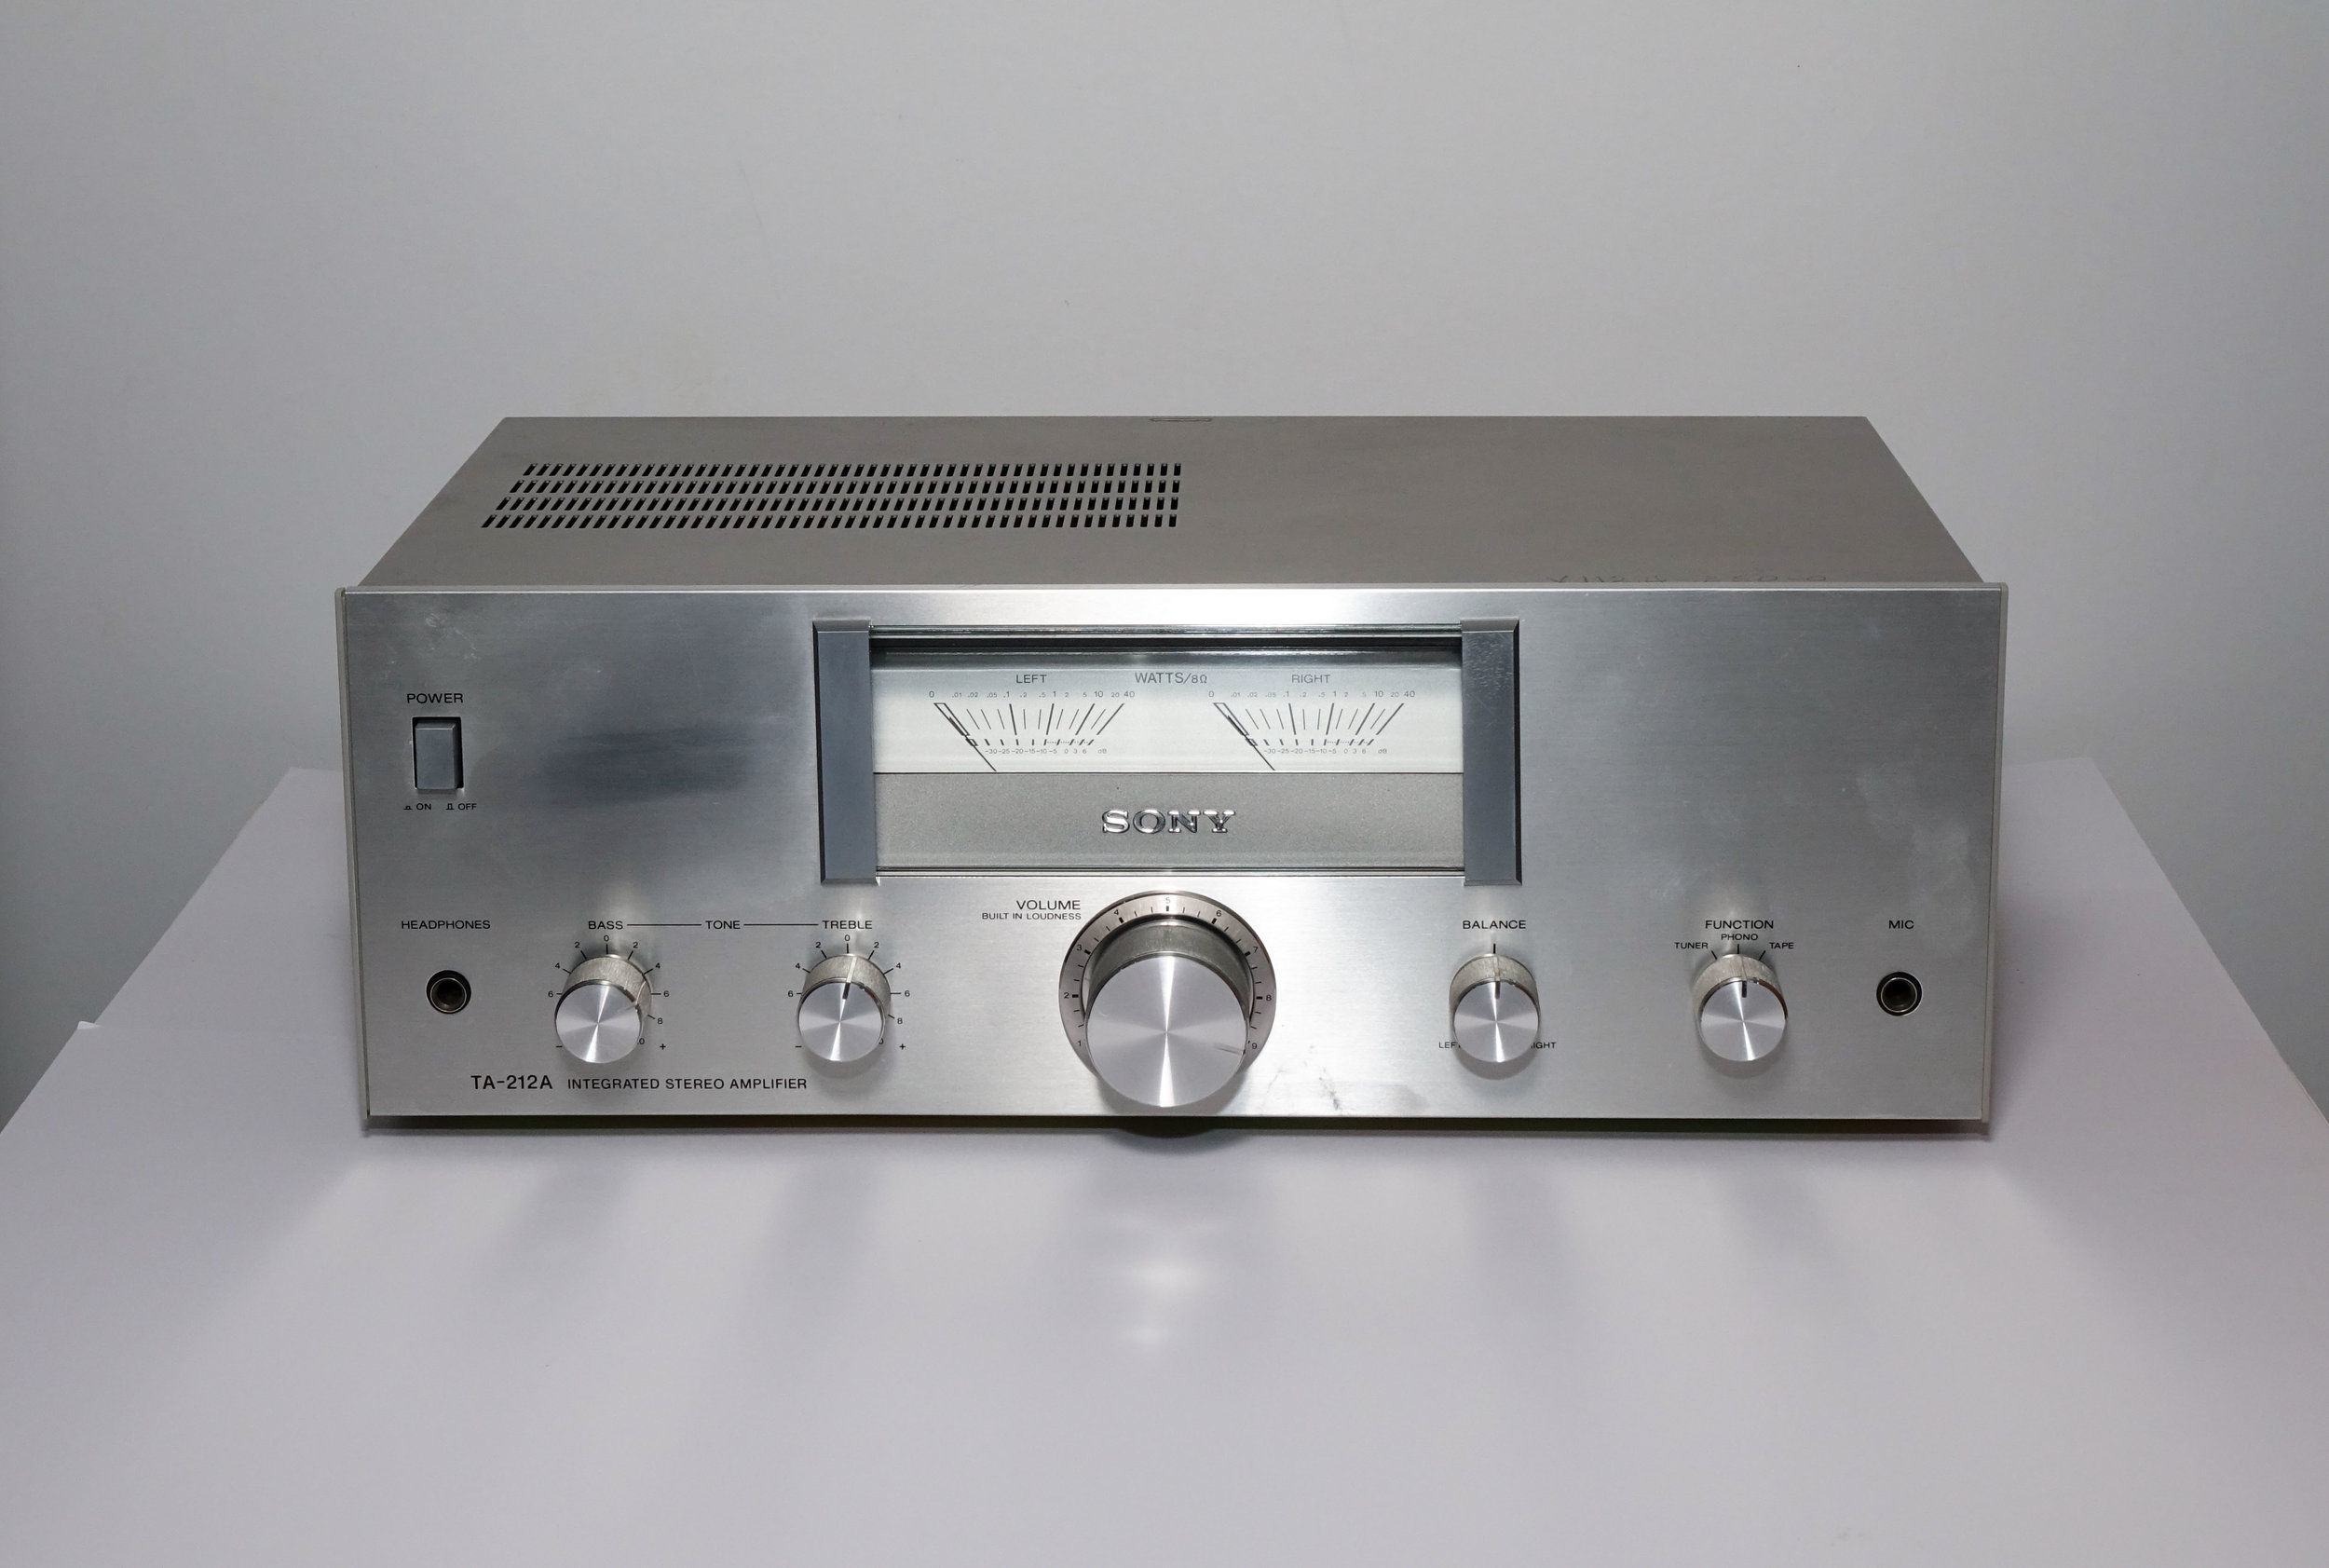 Sony TA-212A   Specifications   Power output: 12 watts per channel into 8Ω (stereo)  Frequency response: 20Hz to 20kHz  Total harmonic distortion: 3%  Damping factor: 20  Input sensitivity: 3.8mV (mic), 3mV (MM), 160mV (line)  Output: 140mV (line)  Speaker load impedance: 8Ω to 16Ω  Dimensions: 407 x 150 x 300mm  Weight: 5.1kg  Year: 1978   $285